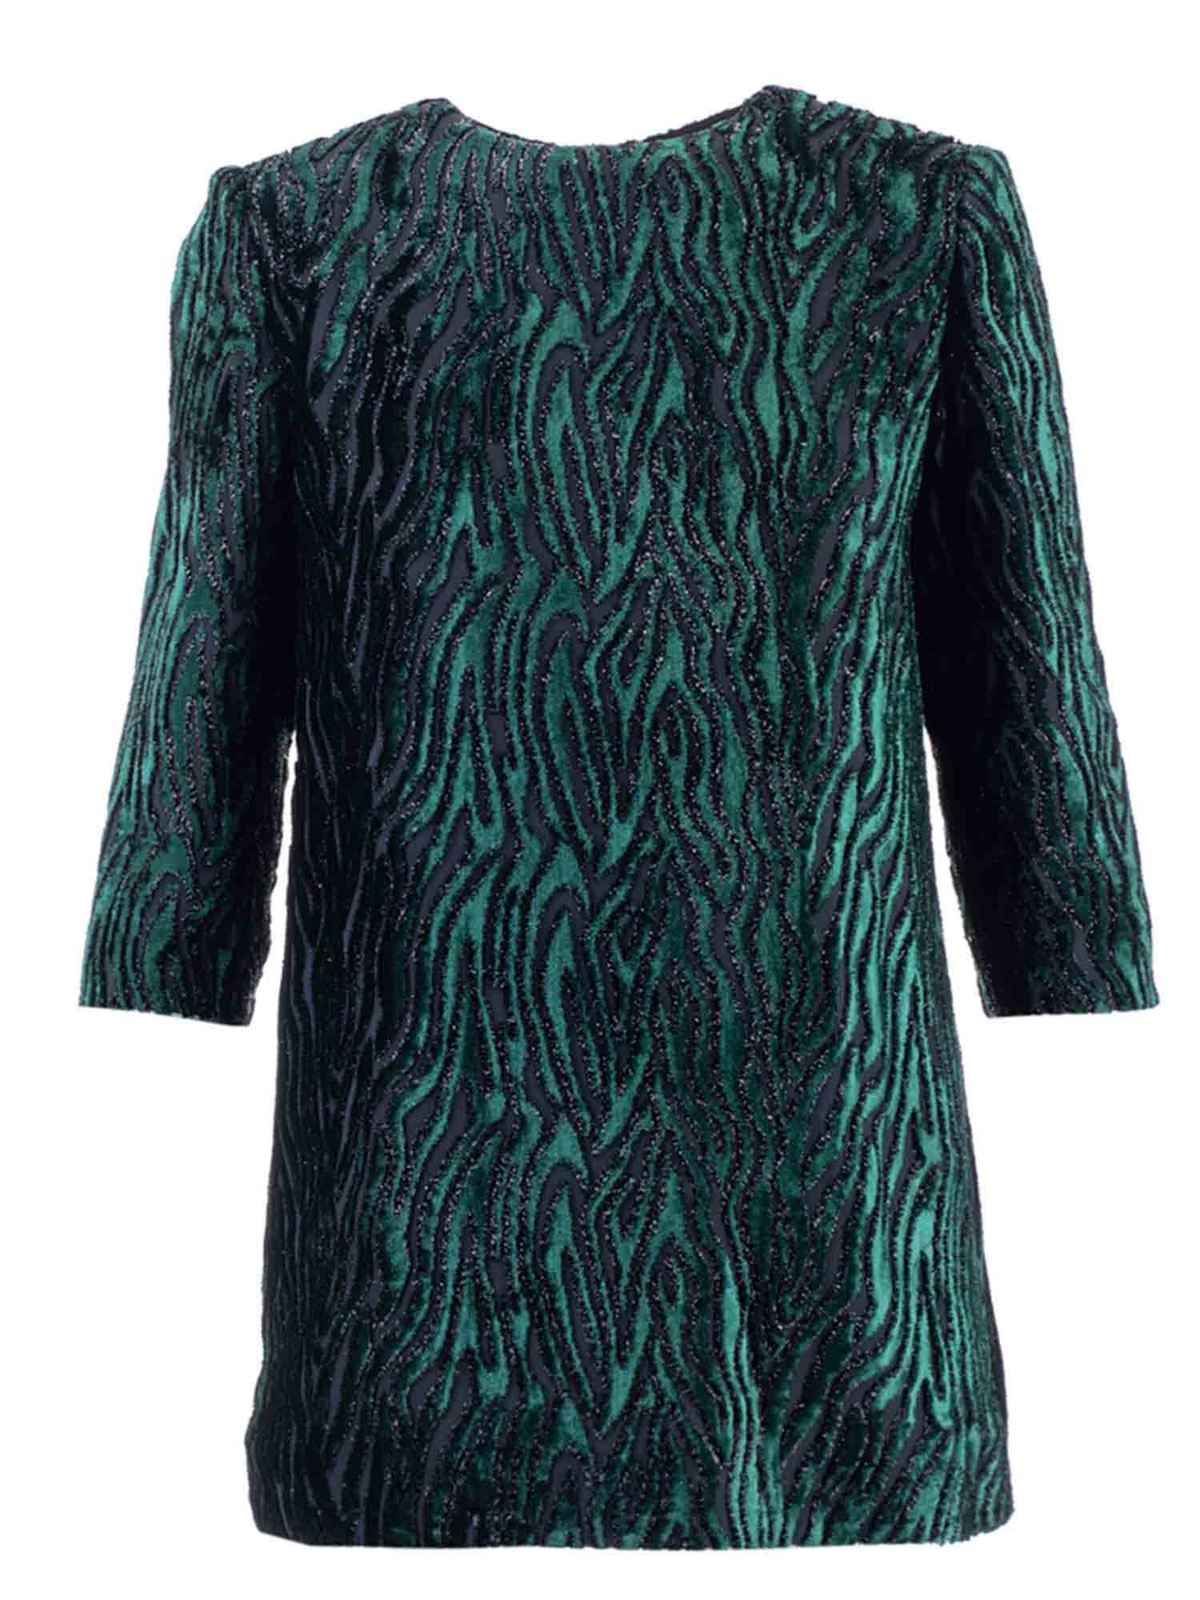 SAINT LAURENT SHORT DRESS IN GREEN AND BLACK ANIMALIER